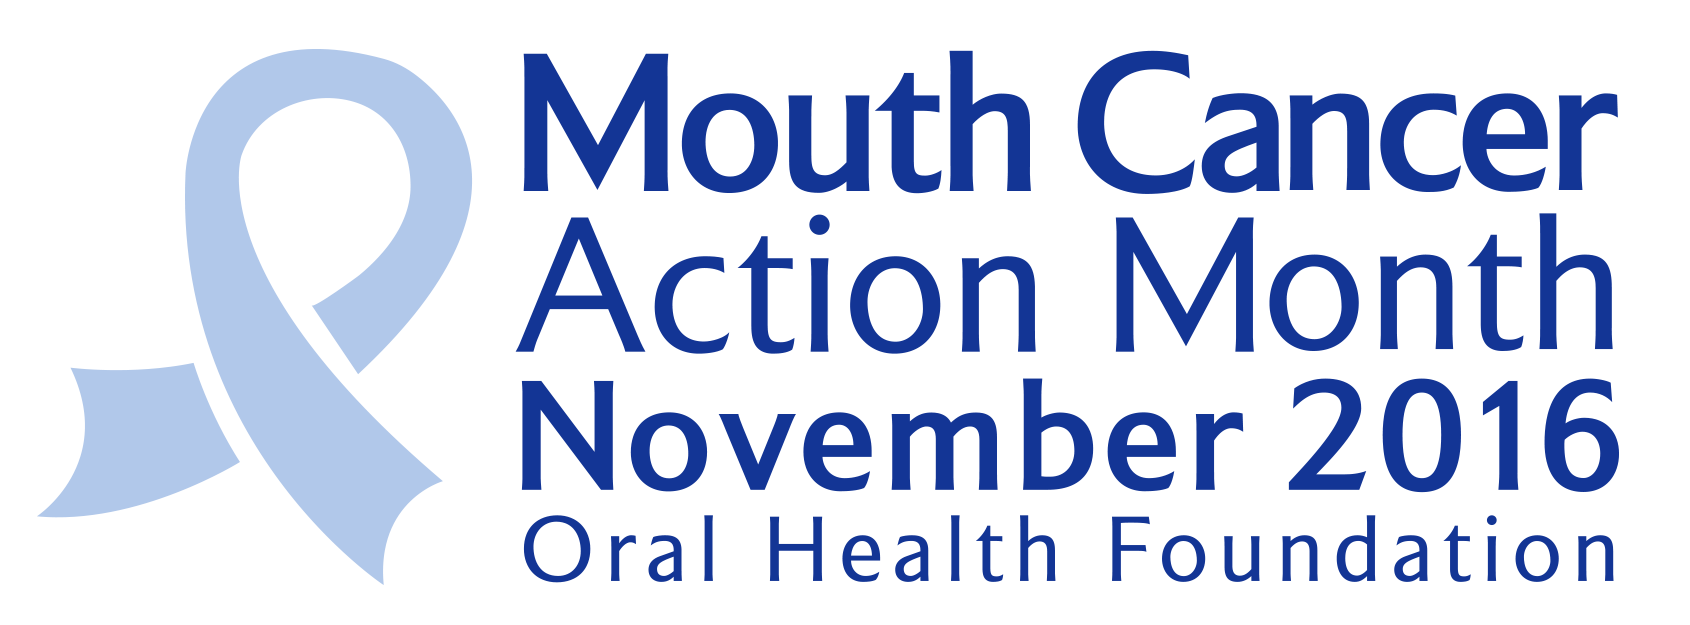 courtesy of www.mouthcancer.org